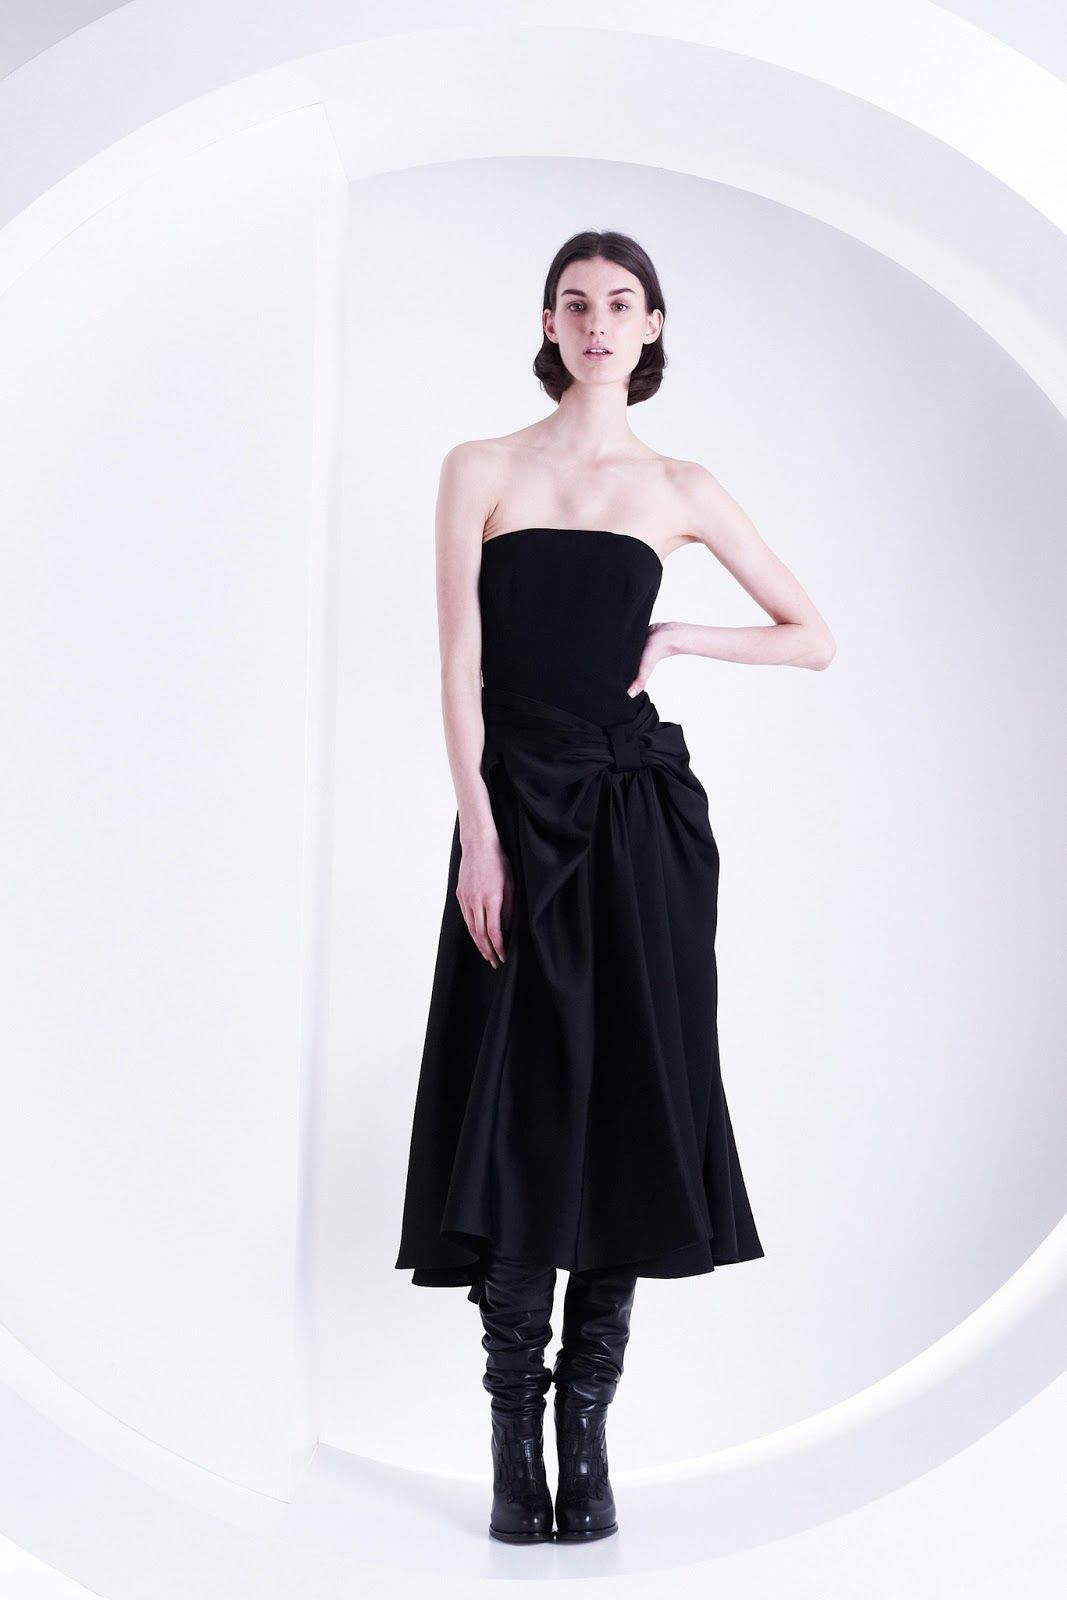 marte mei van haaster for viktor & rolf pre-fall 2013 | visual optimism; fashion editorials, shows, campaigns & more!